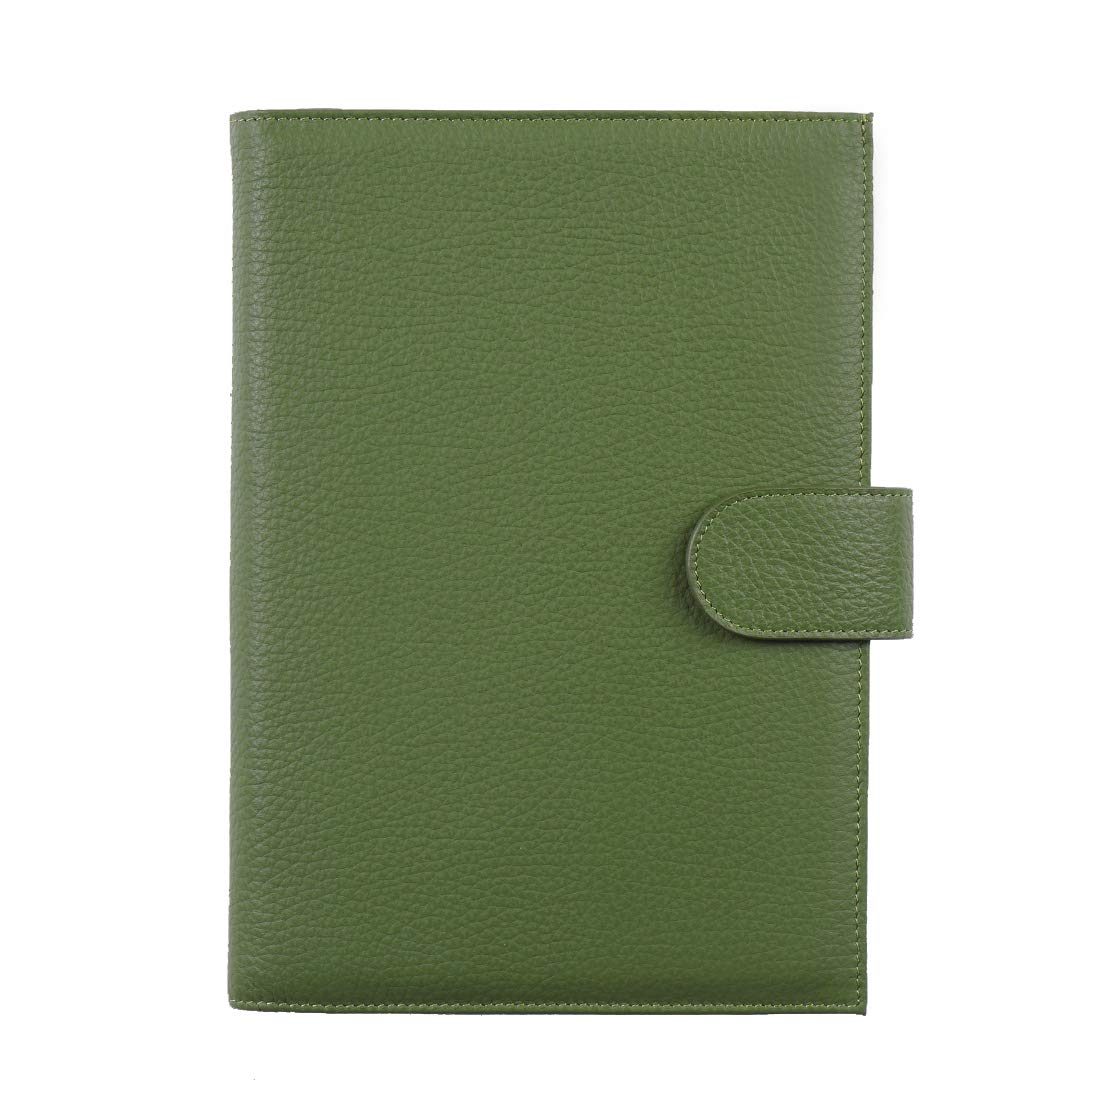 Planner Cover for Hobonichi Techo, Midori MD, Stalogy A5 Notebooks - Moterm Genuine Leather Notebooks Cover with Pen Loop, with Card Slots and Pockets (A5, Milled-Green) by Moterm